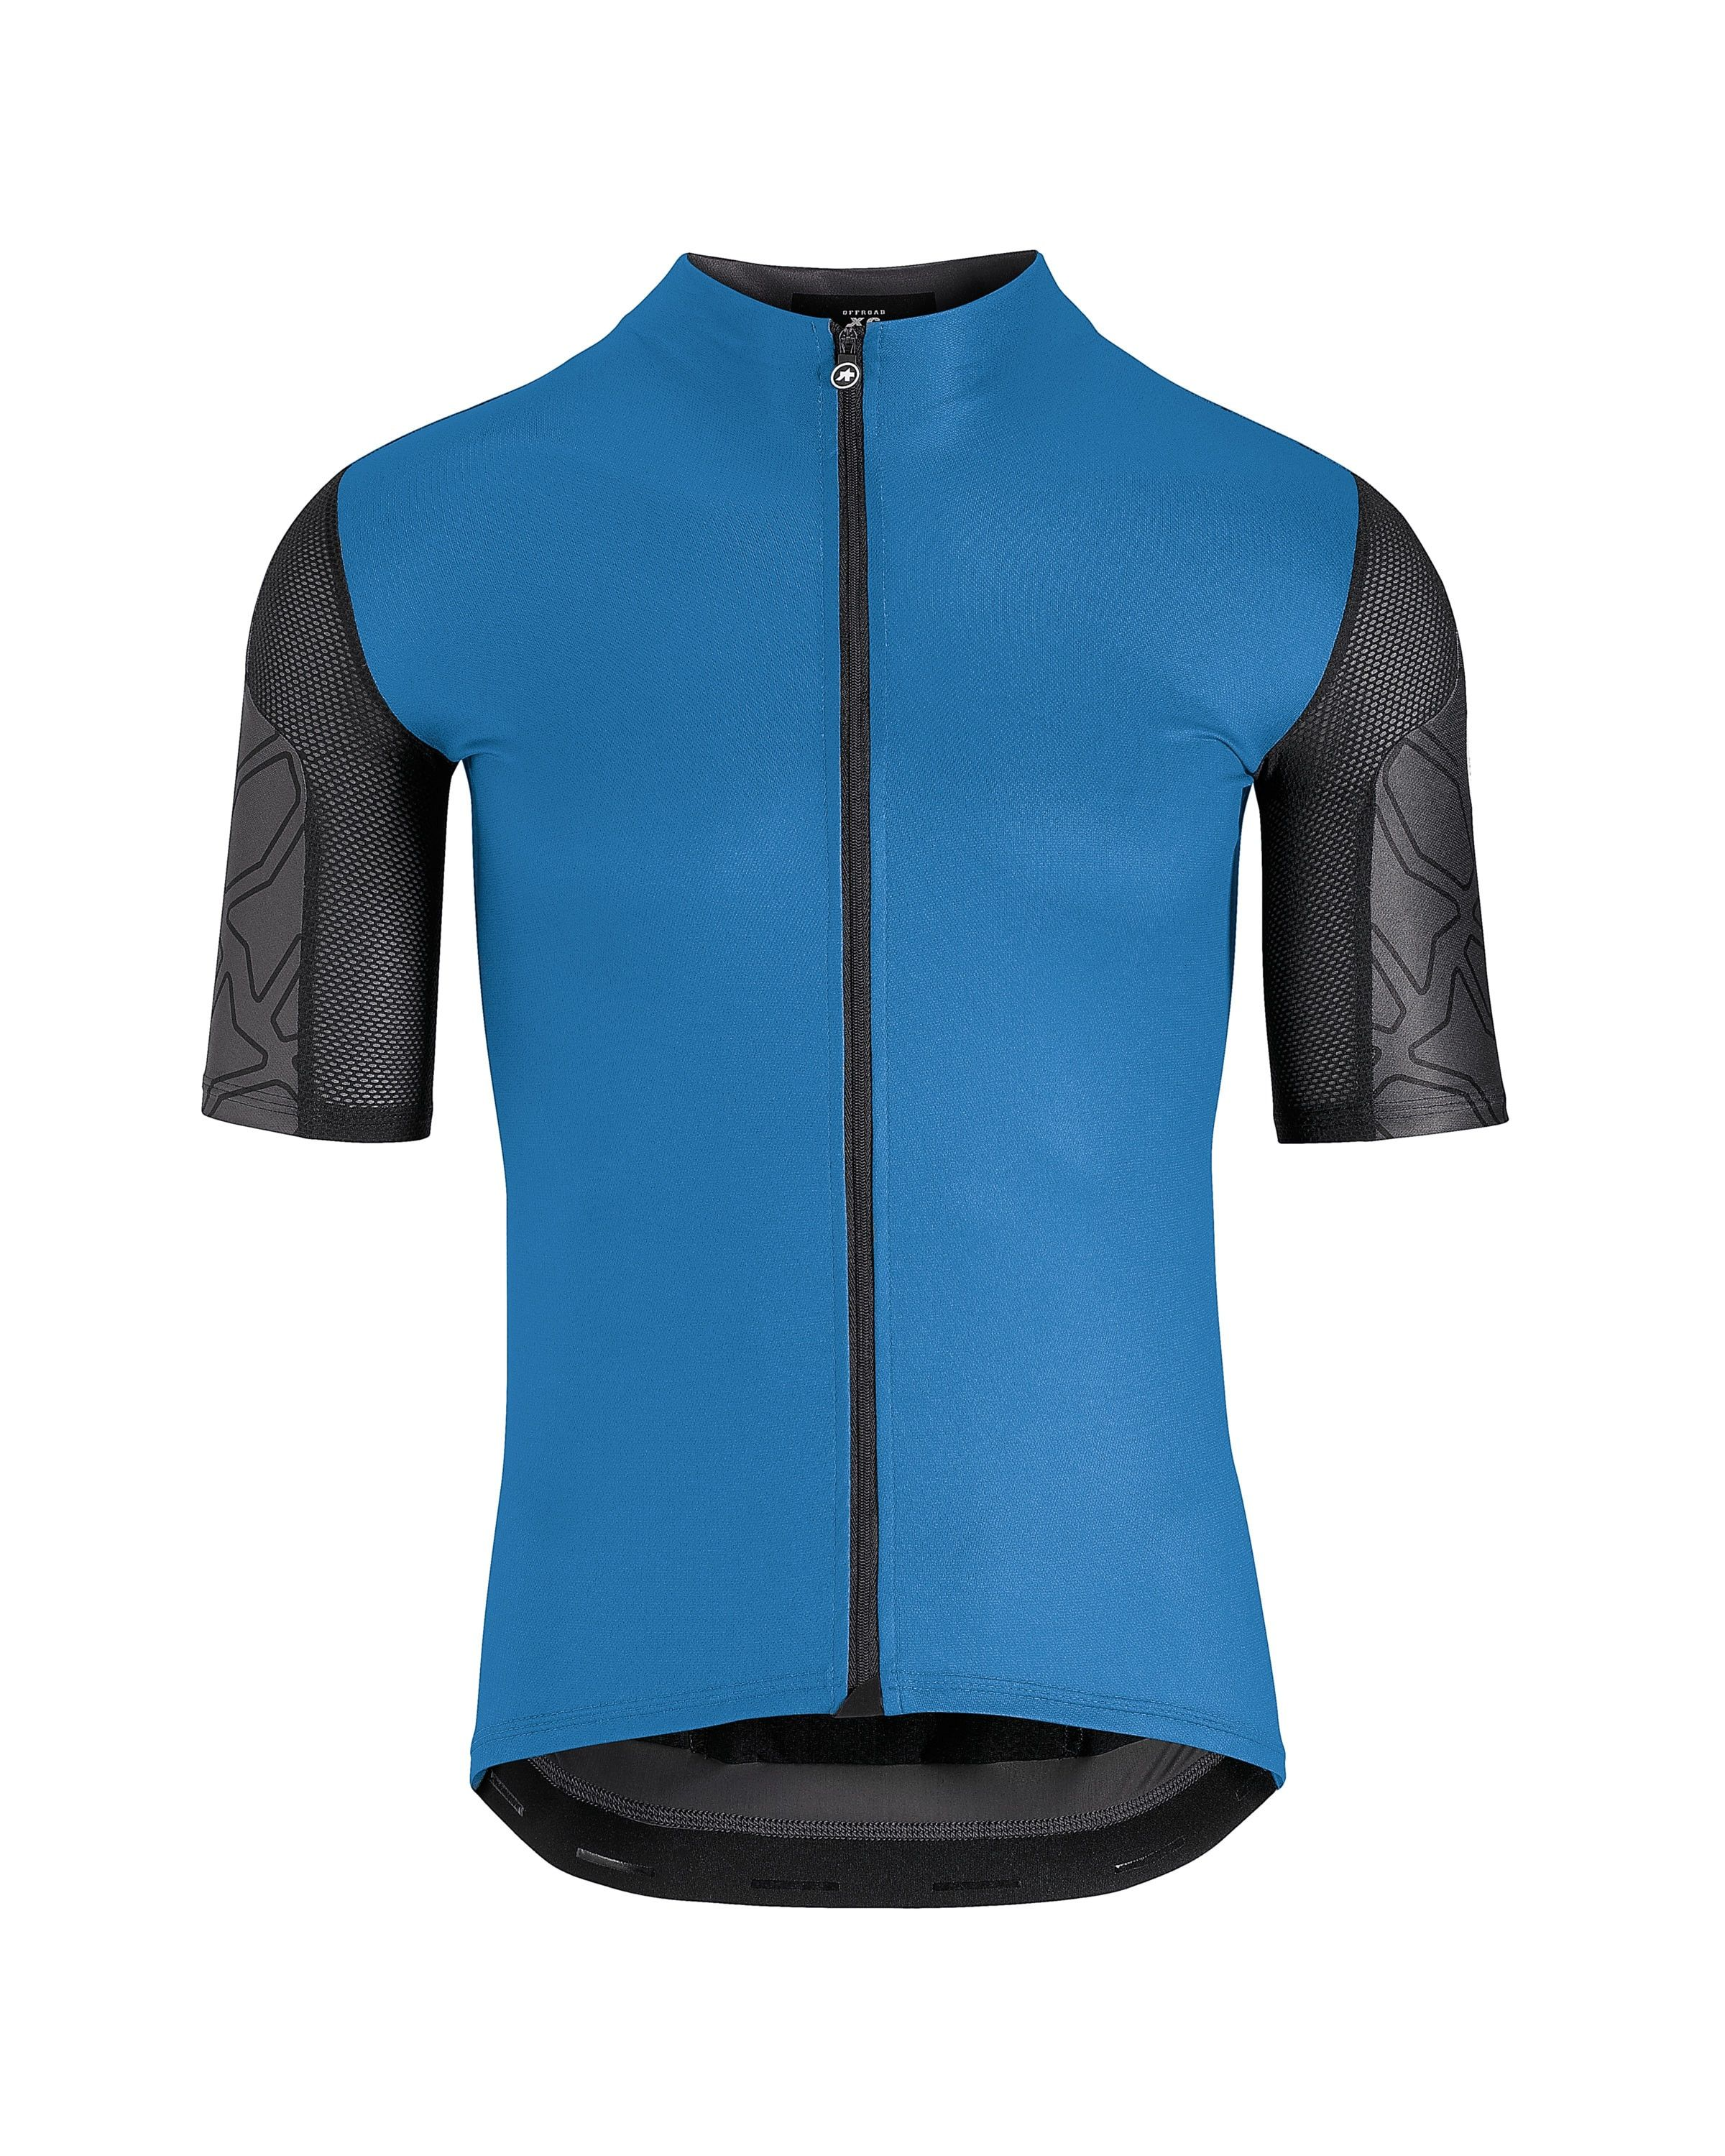 ASSOS XC SHORT SLEEVE JERSEY corfuBlue-Small - We understand that the  demands of riding 83ed9f789